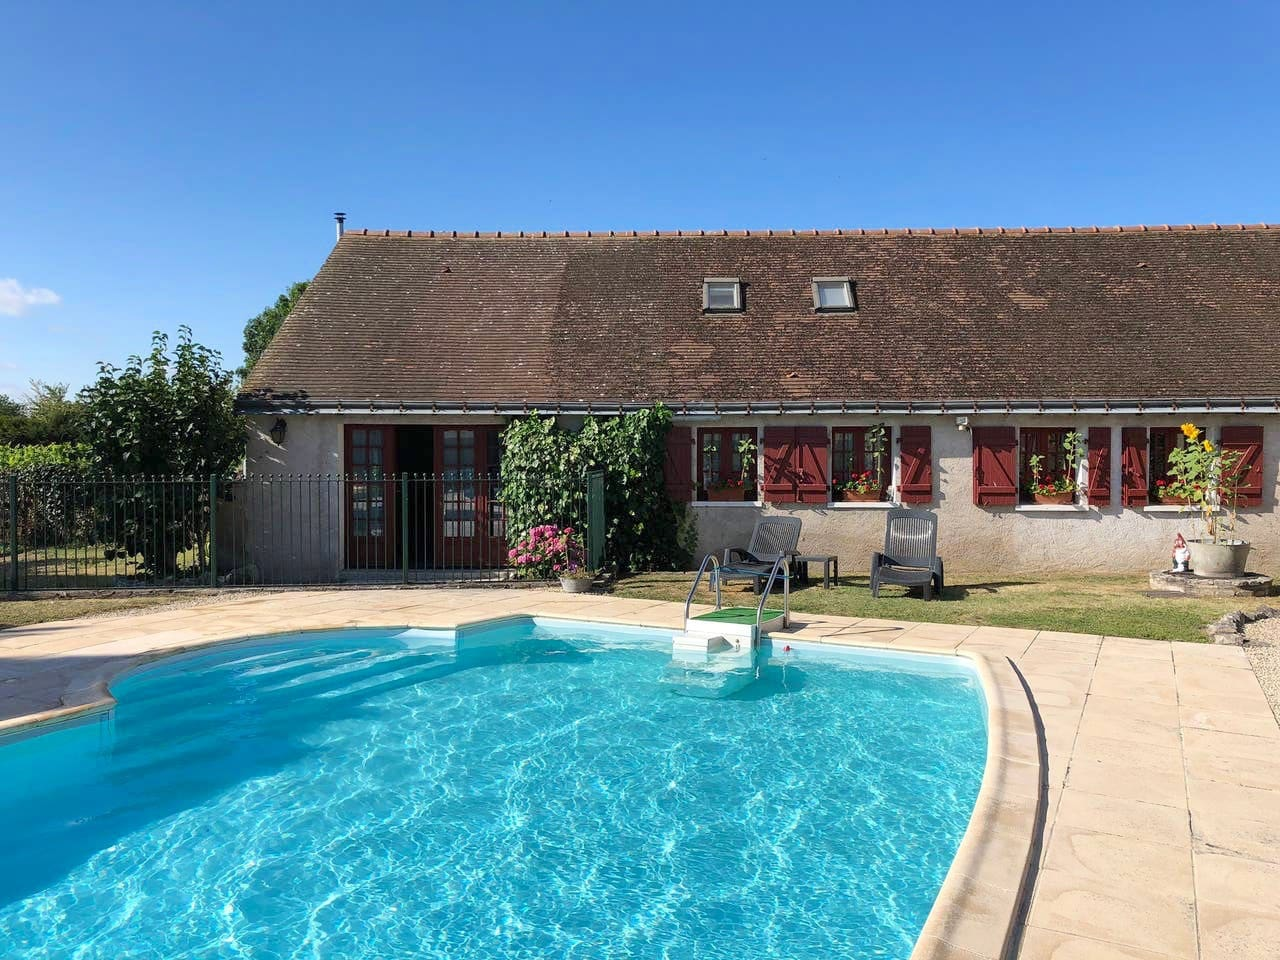 Gite attached to the owners house , often sole use of pool for the gite, check on enquiry.